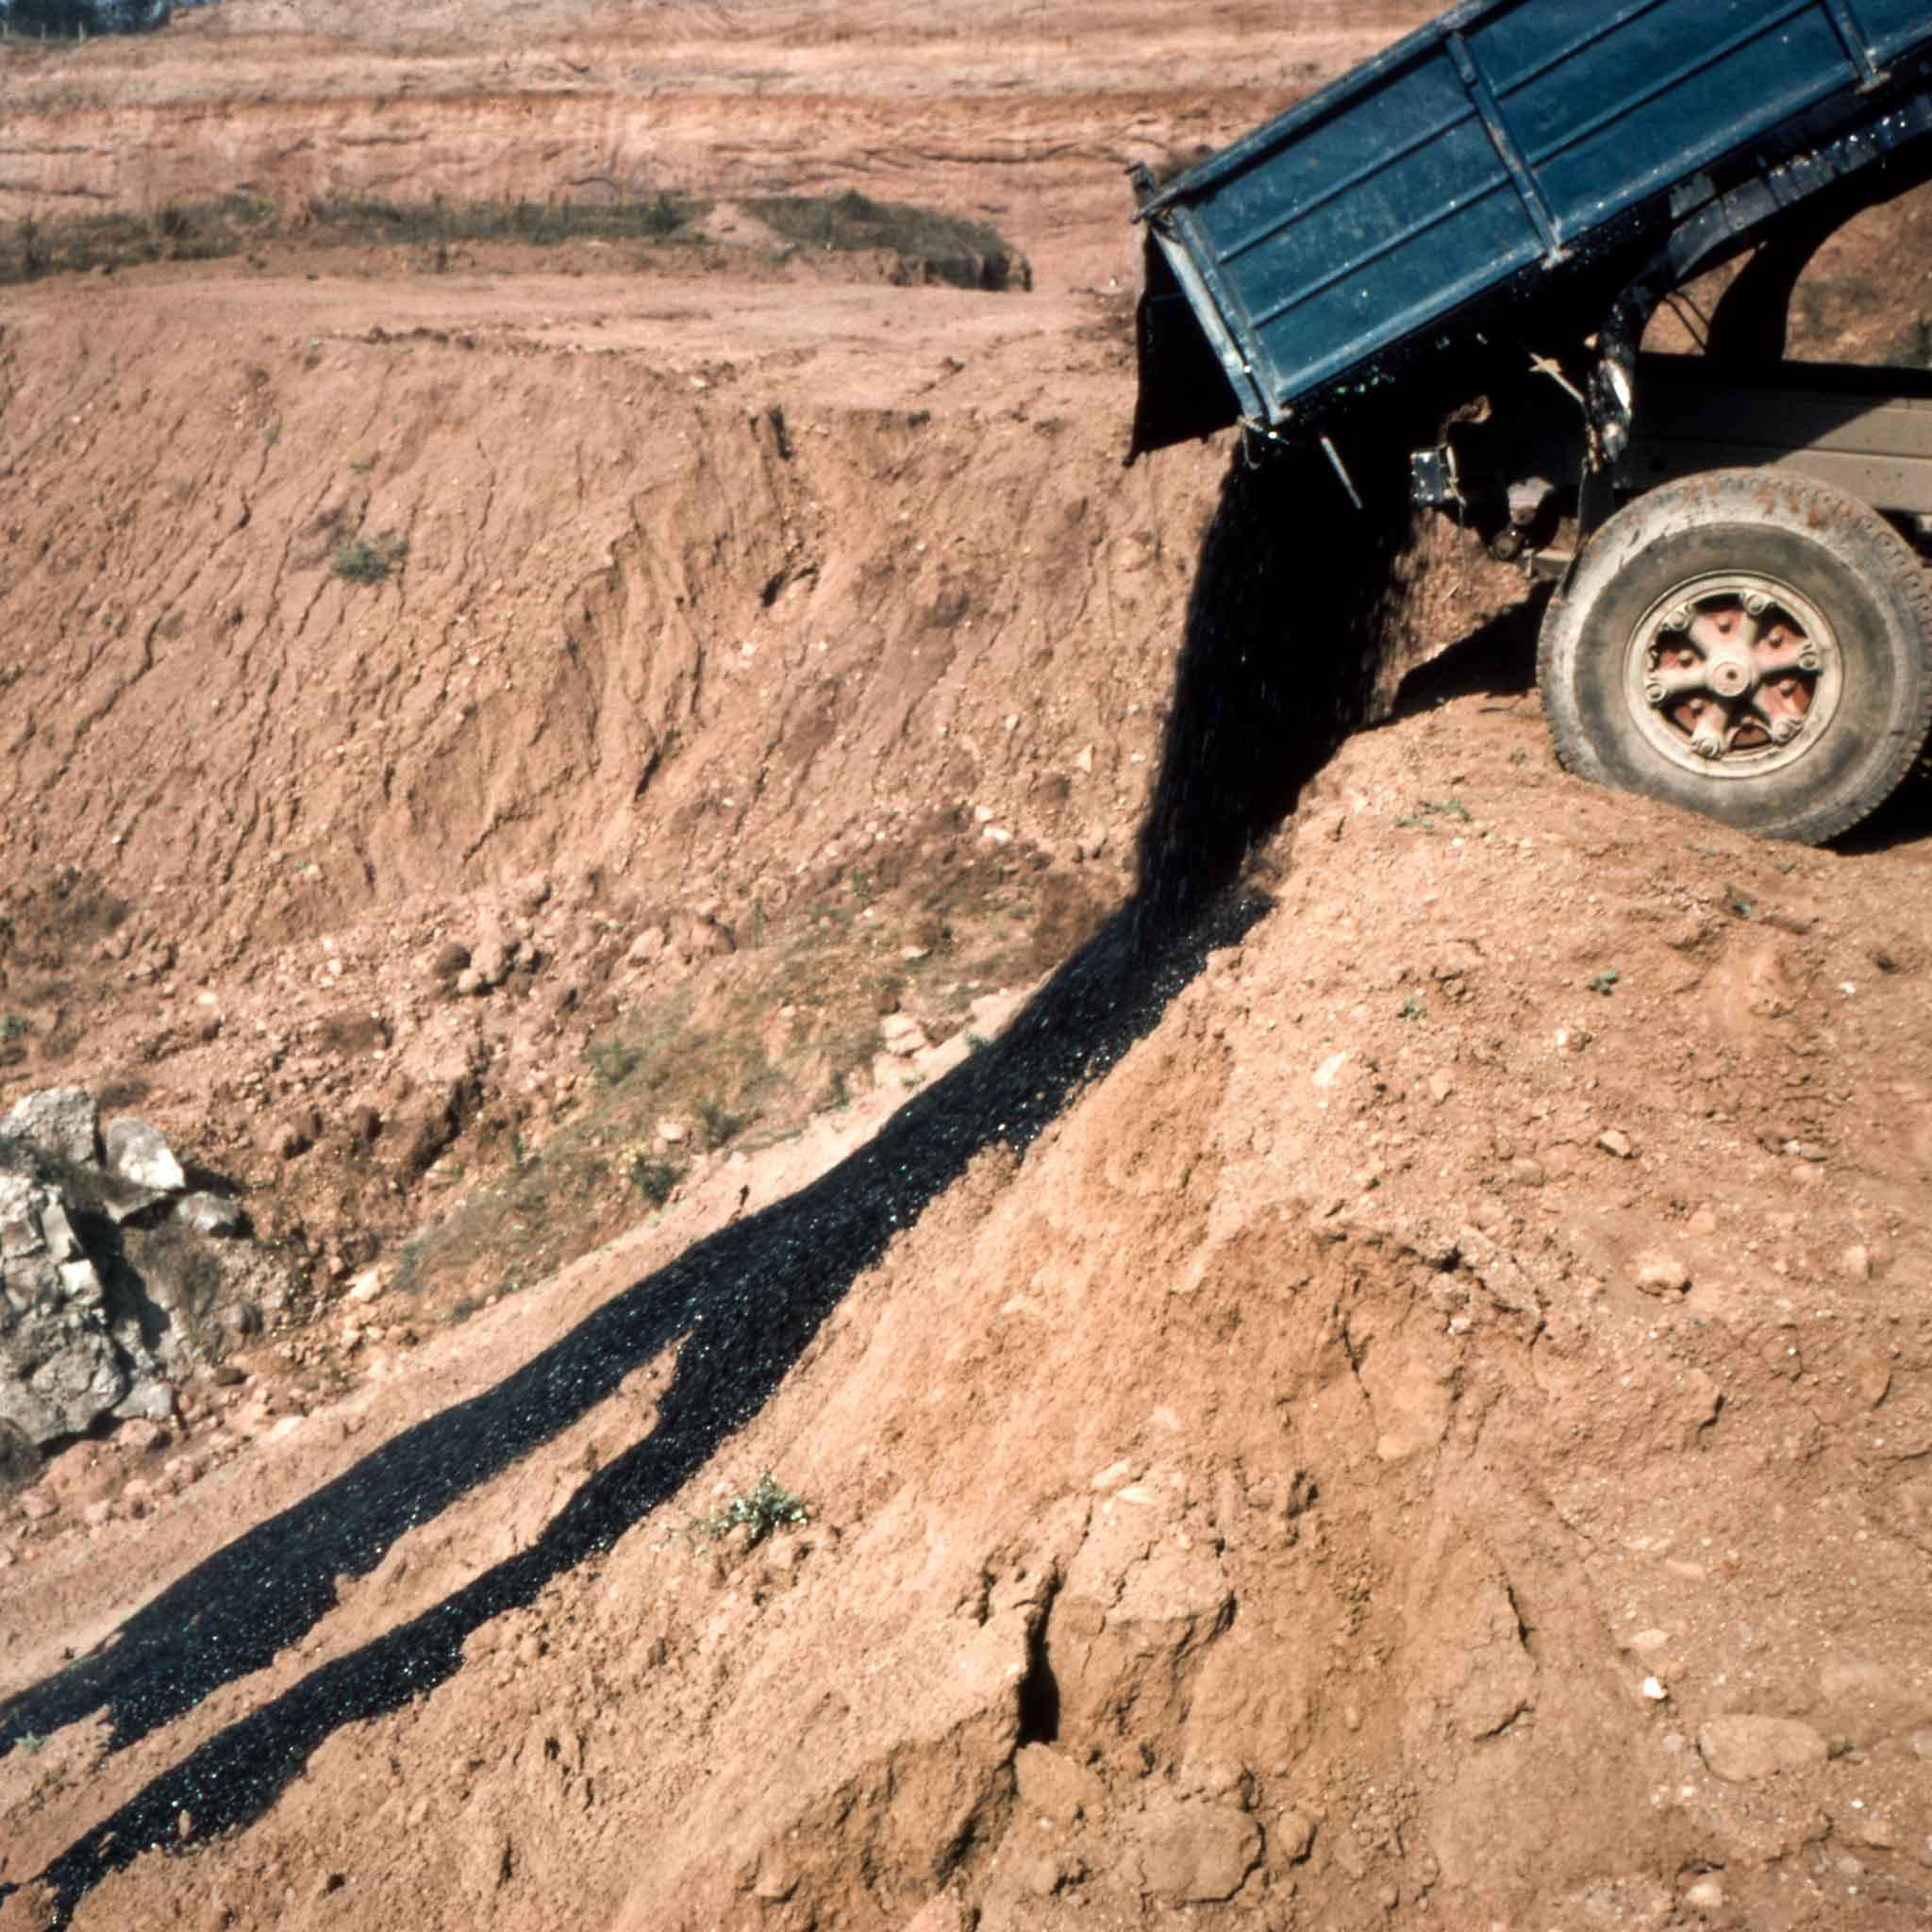 A dump truck unloads a large amount of asphalt which runs down the side of a hill outside of Rome, Italy.